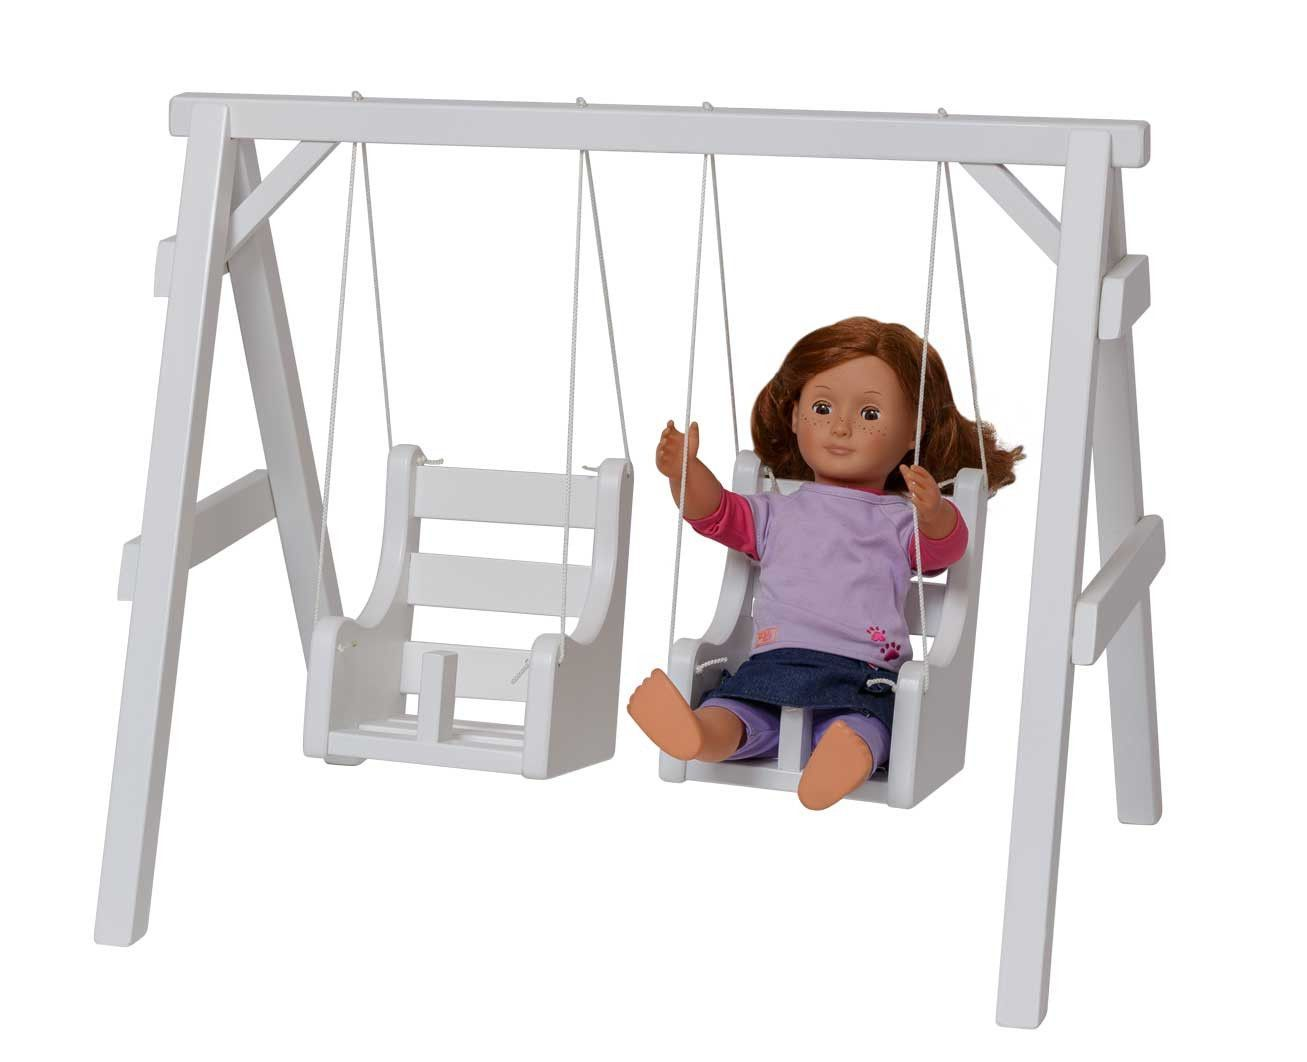 American Girl High Chair Matching Living Room Chairs Baby Doll Playground Swing Set Amish Handmade Toy Swings